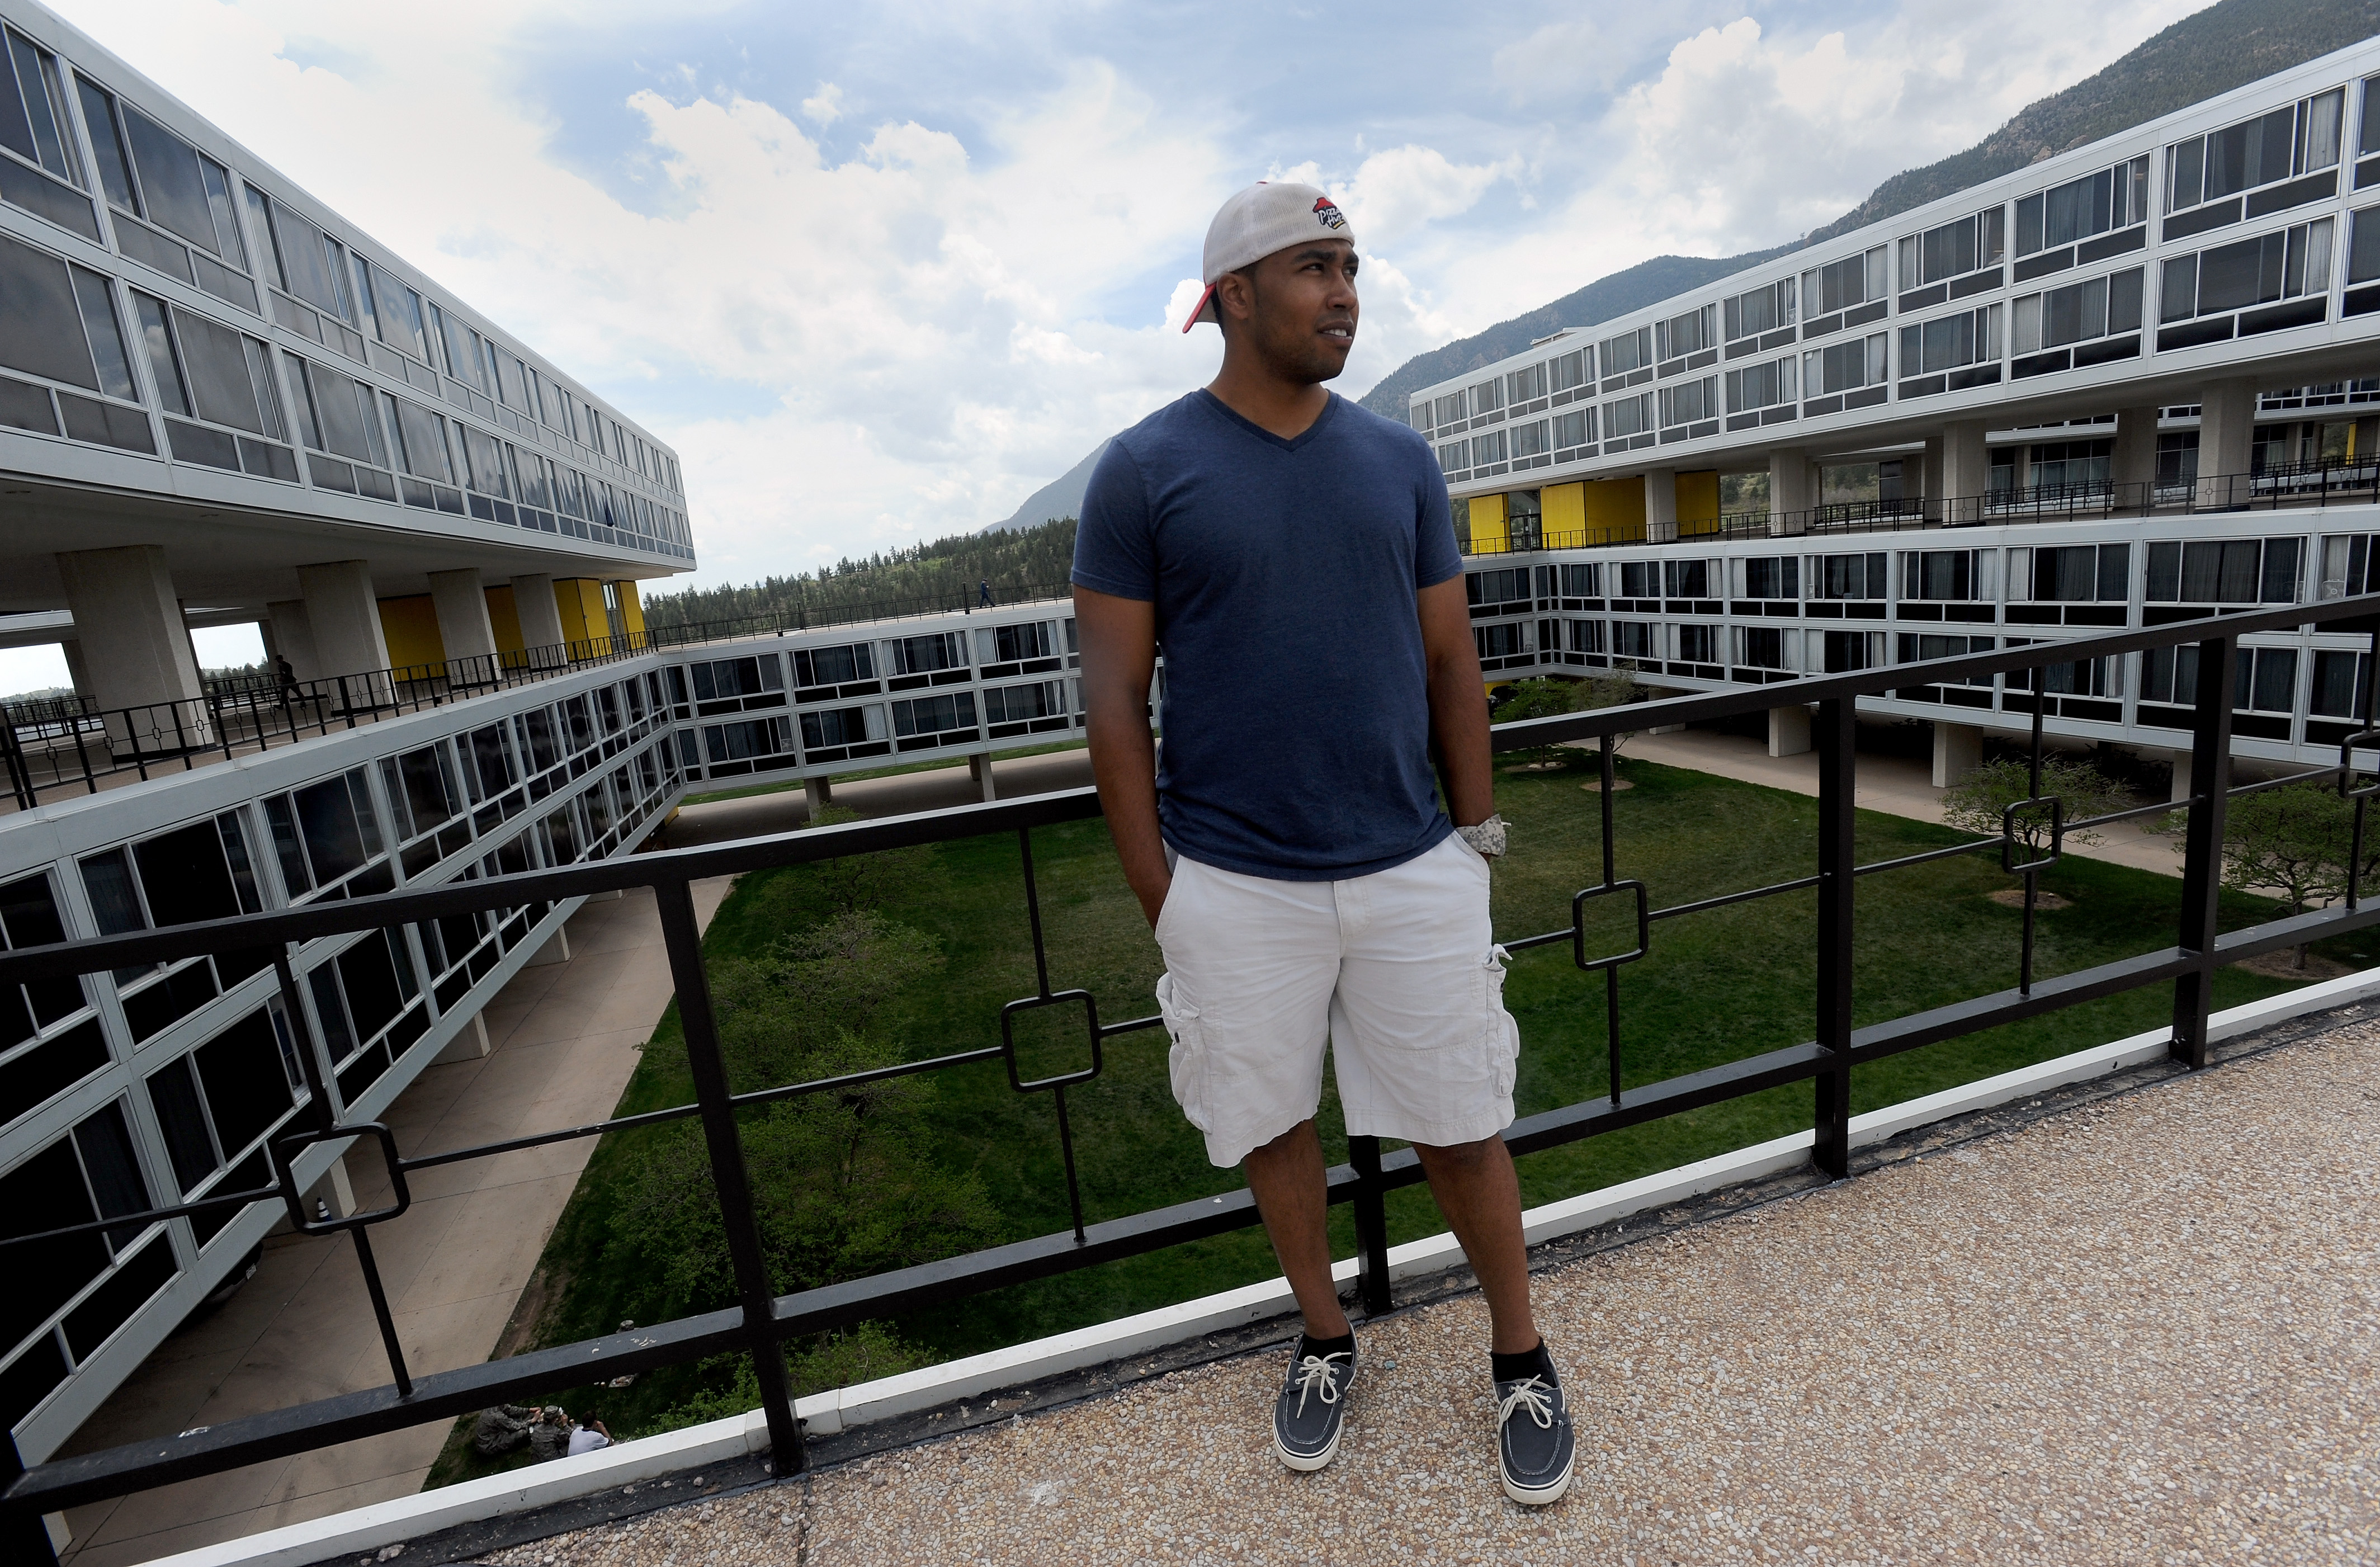 Former Air Force Cadet Eric Thomas stands outside the cadet dorms in May, a month after he was expelled from the Air Force Academy. (The Gazette, Christian Murdock)